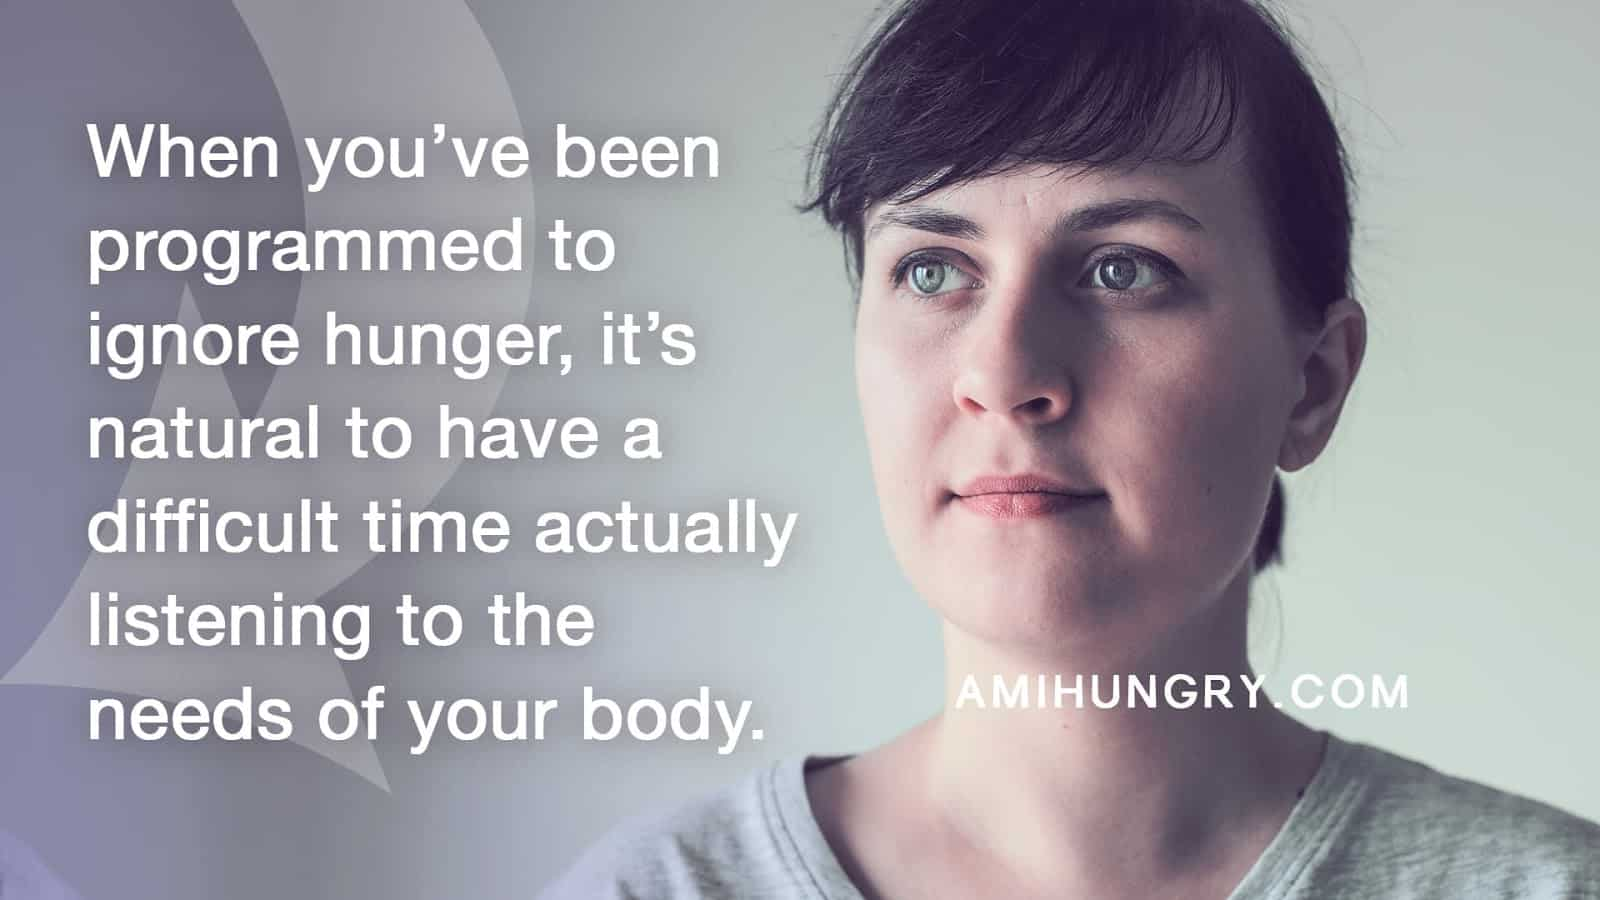 Quote — When you've been programmed to ignore hunger, it's natural to have difficulty listening to the needs of your body.